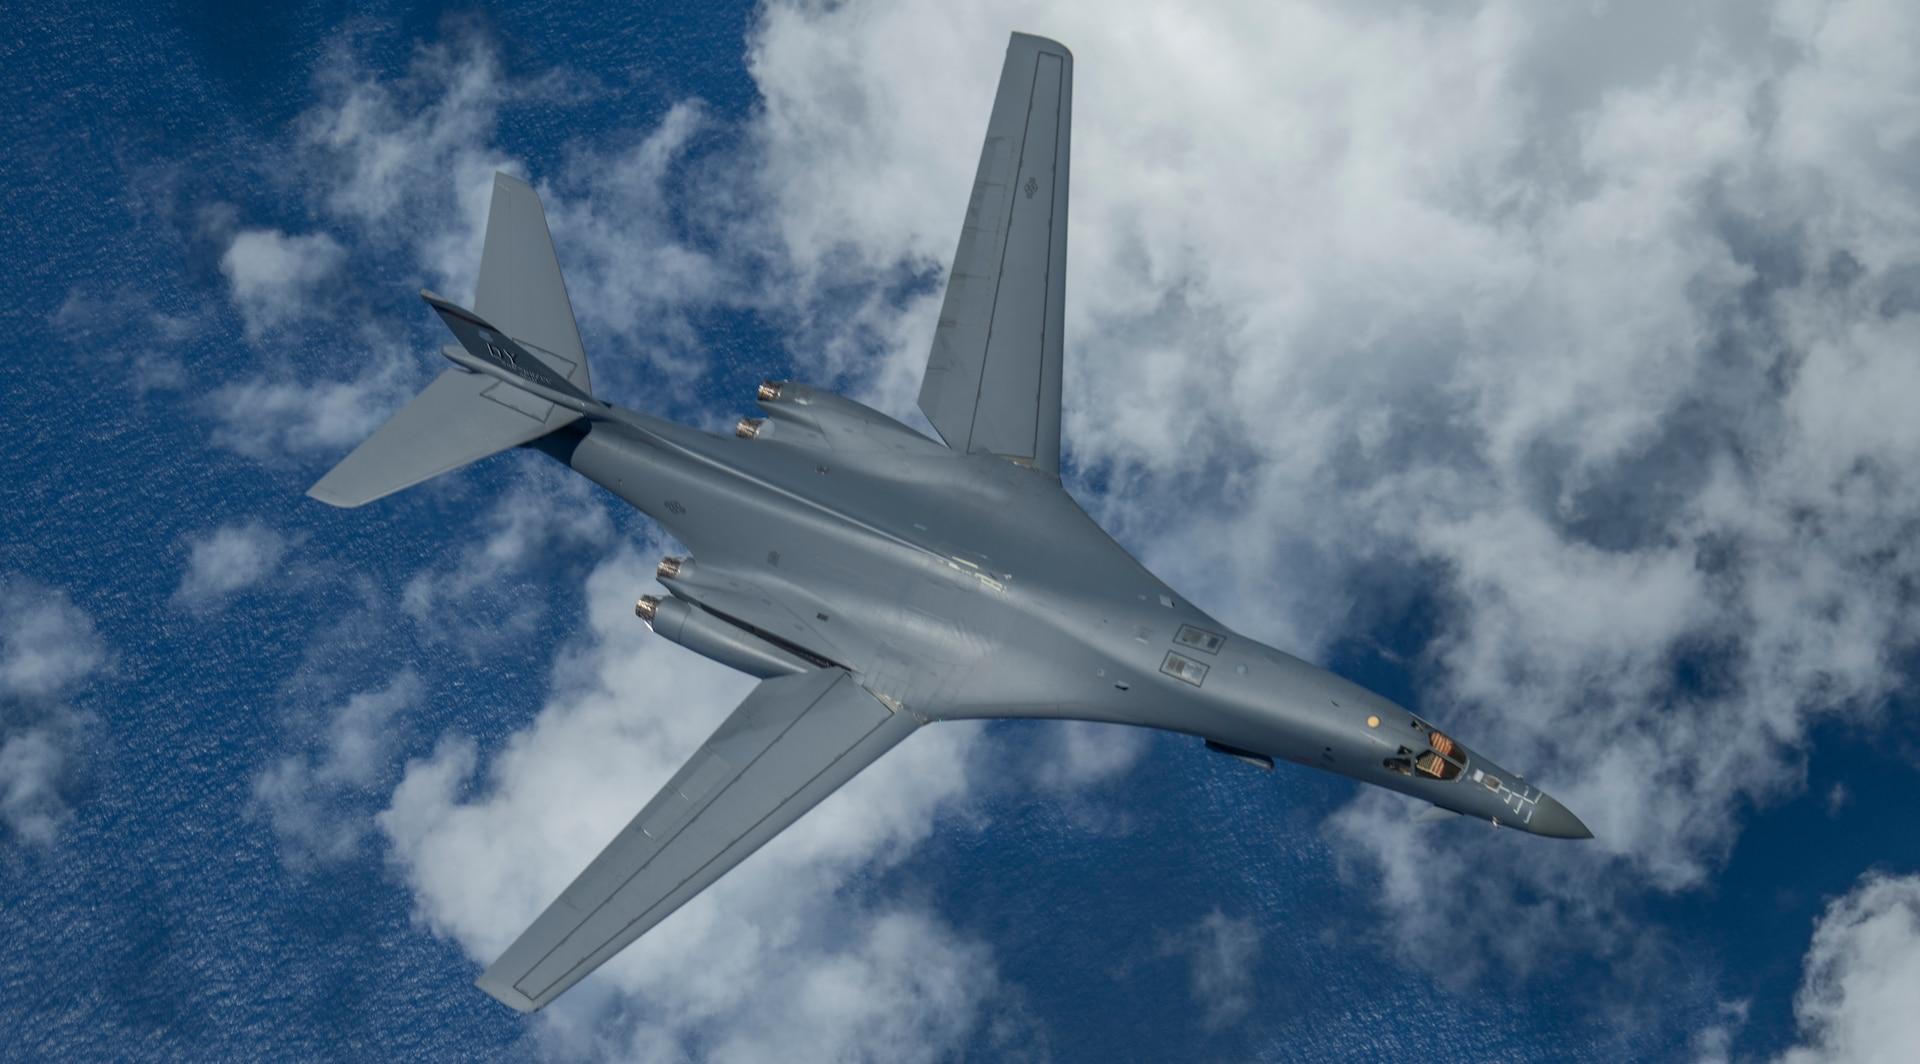 A 9th Expeditionary Bomb Squadron B-1B Lancer flies over the East China Sea May 6, 2020, during a training mission. The 9th EBS is deployed to Andersen Air Force Base, Guam, as part of a Bomber Task Force supporting Pacific Air Forces' strategic deterrence missions and  commitment to the security and stability of the Indo-Pacific region. (U.S. Air Force photo by Senior Airman River Bruce)